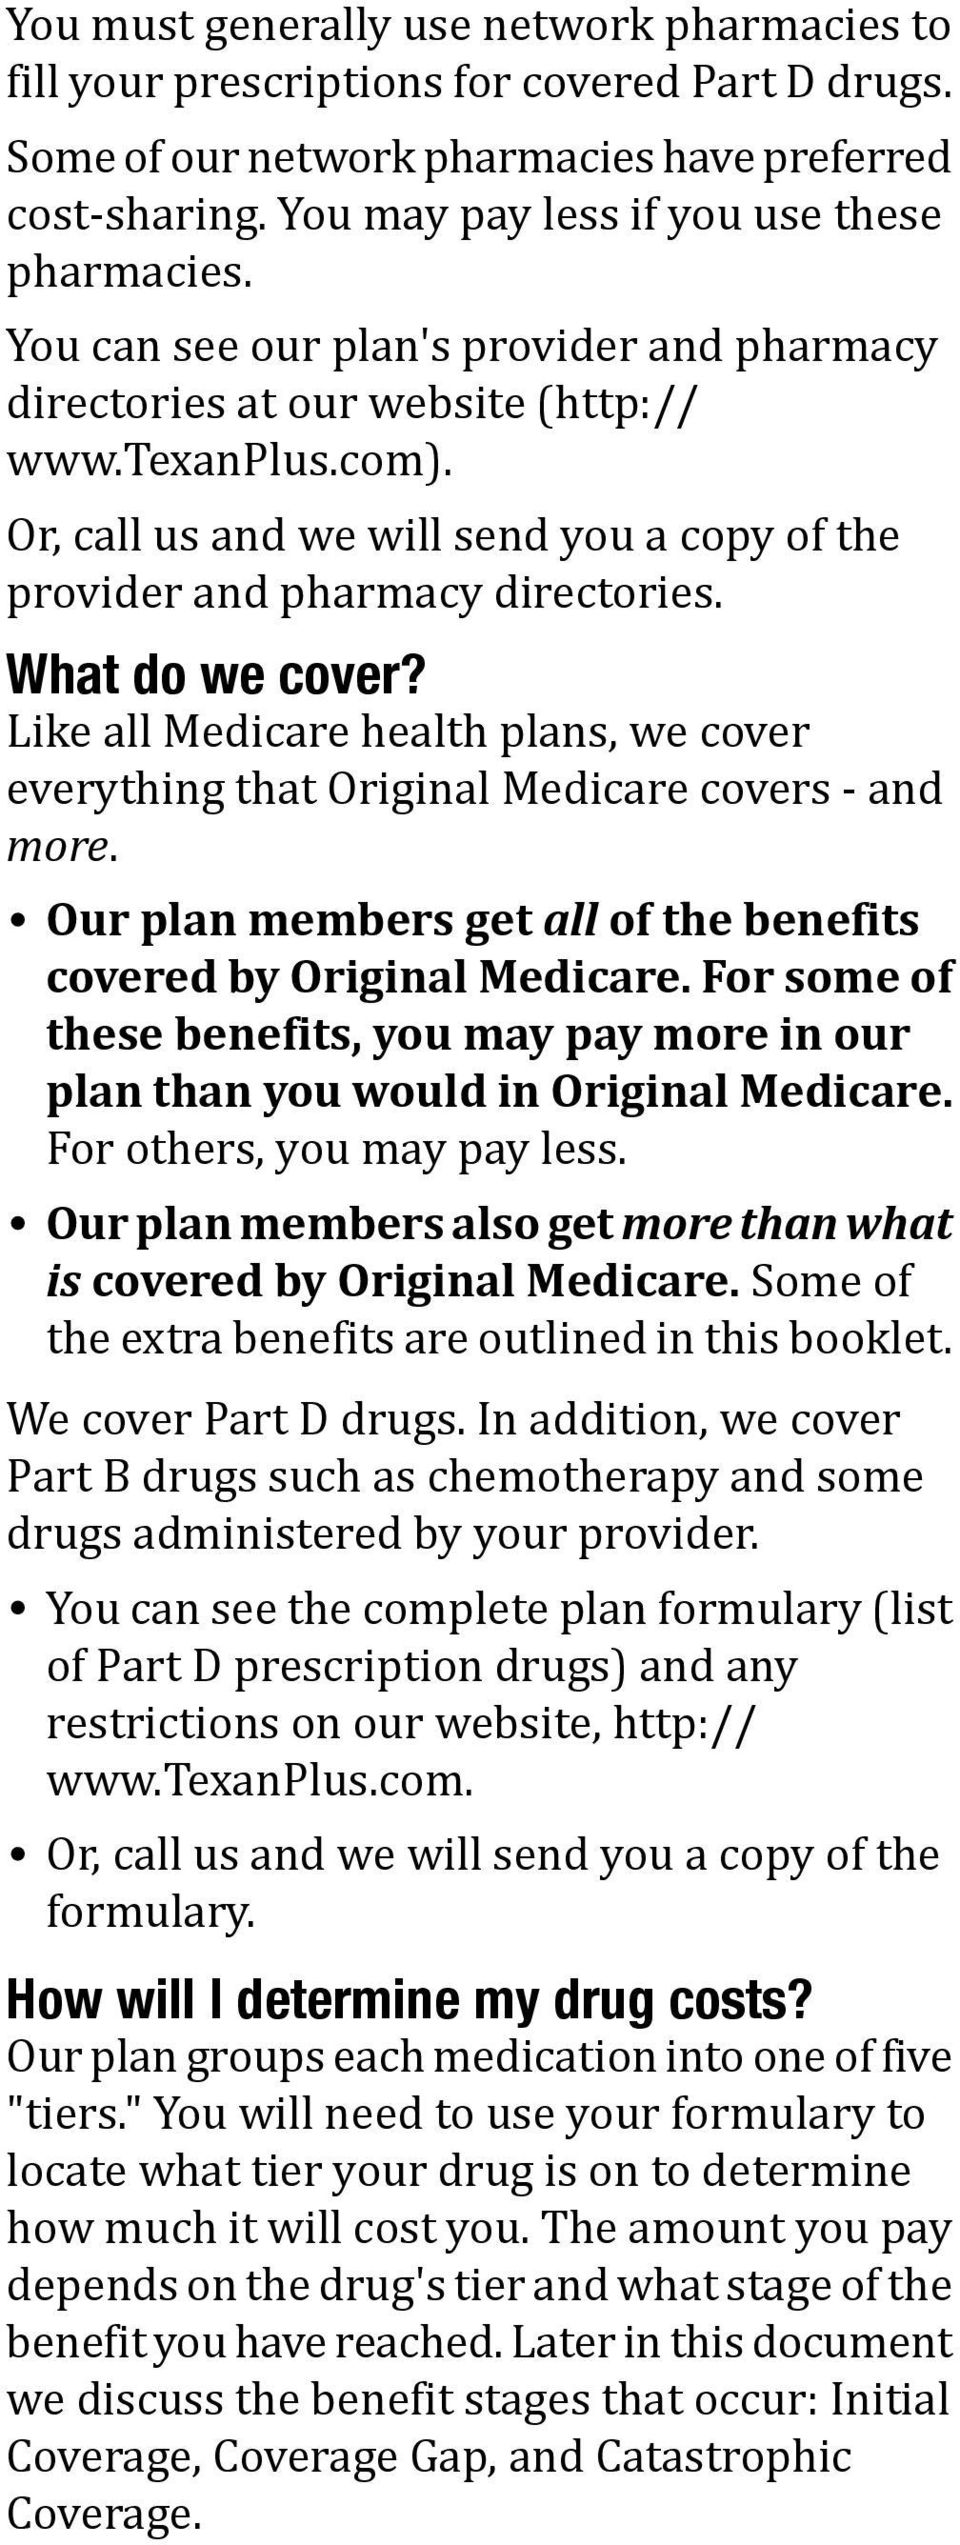 Like all Medicare health plans, we cover everything that Original Medicare covers - and more. Our plan members get all of the benefits covered by Original Medicare.